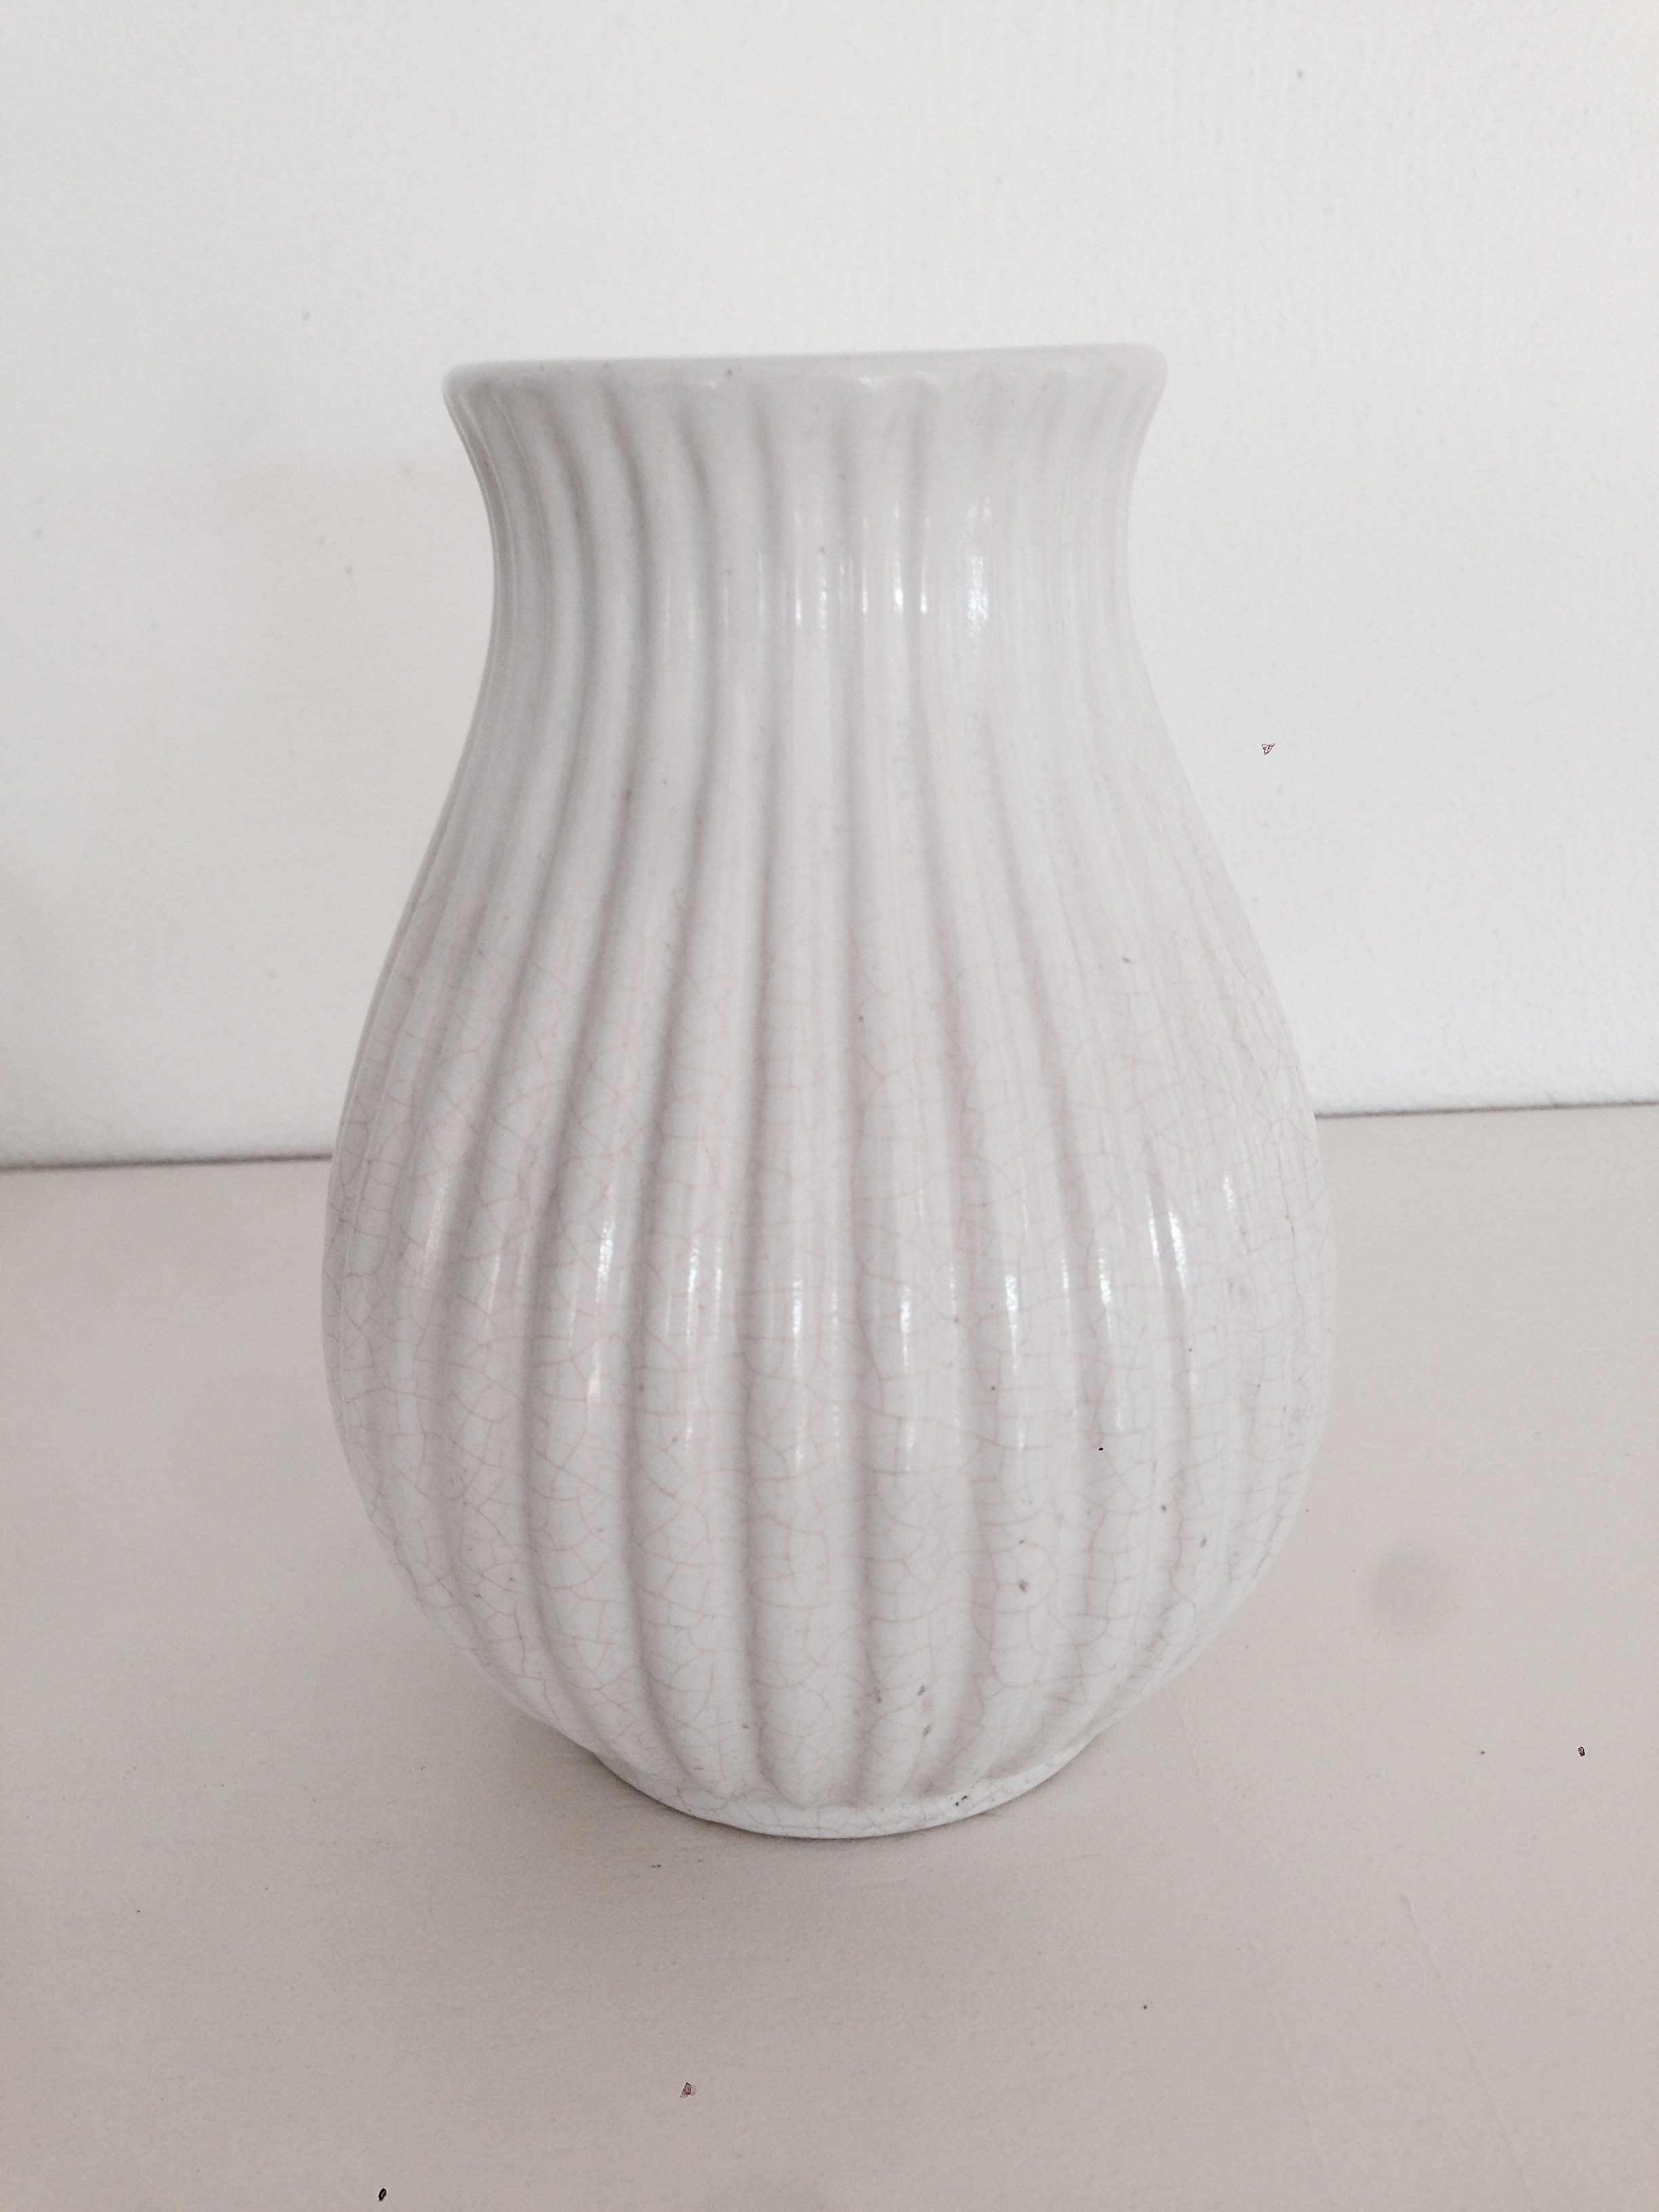 Ceramic Pumpkin Vase Of Michael andersen Riflet Keramik Vase White All Shades 50s 60s for Antique Pottery A· Michael andersen Riflet Keramik Vase